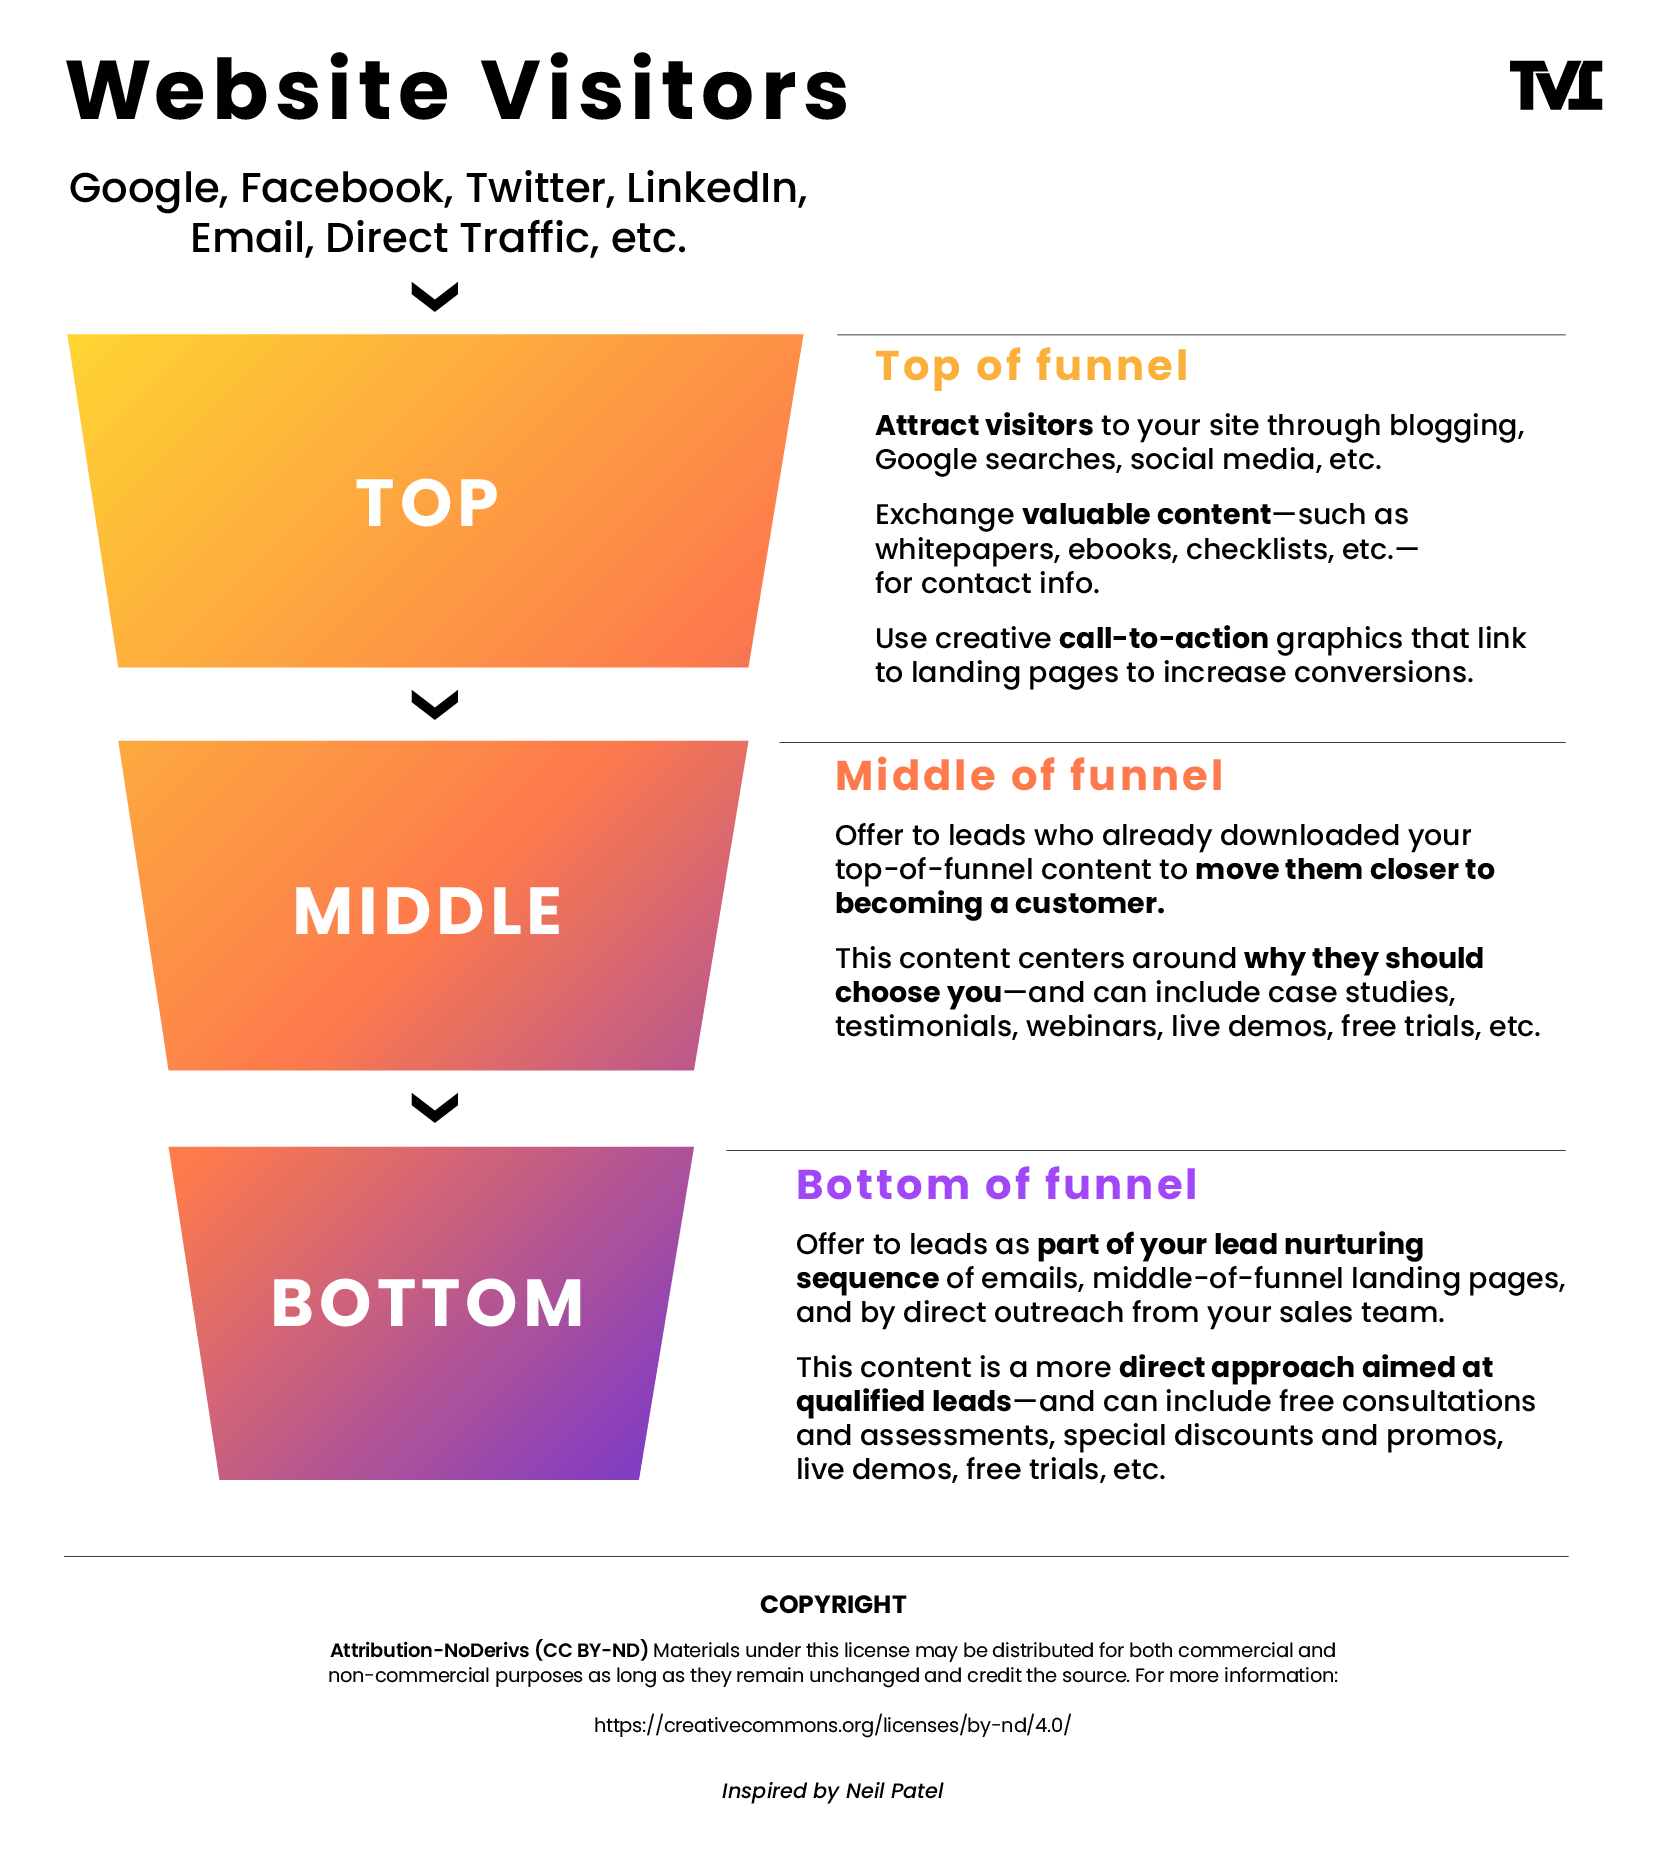 Infographic showing the sales funnel and its different customer stages.